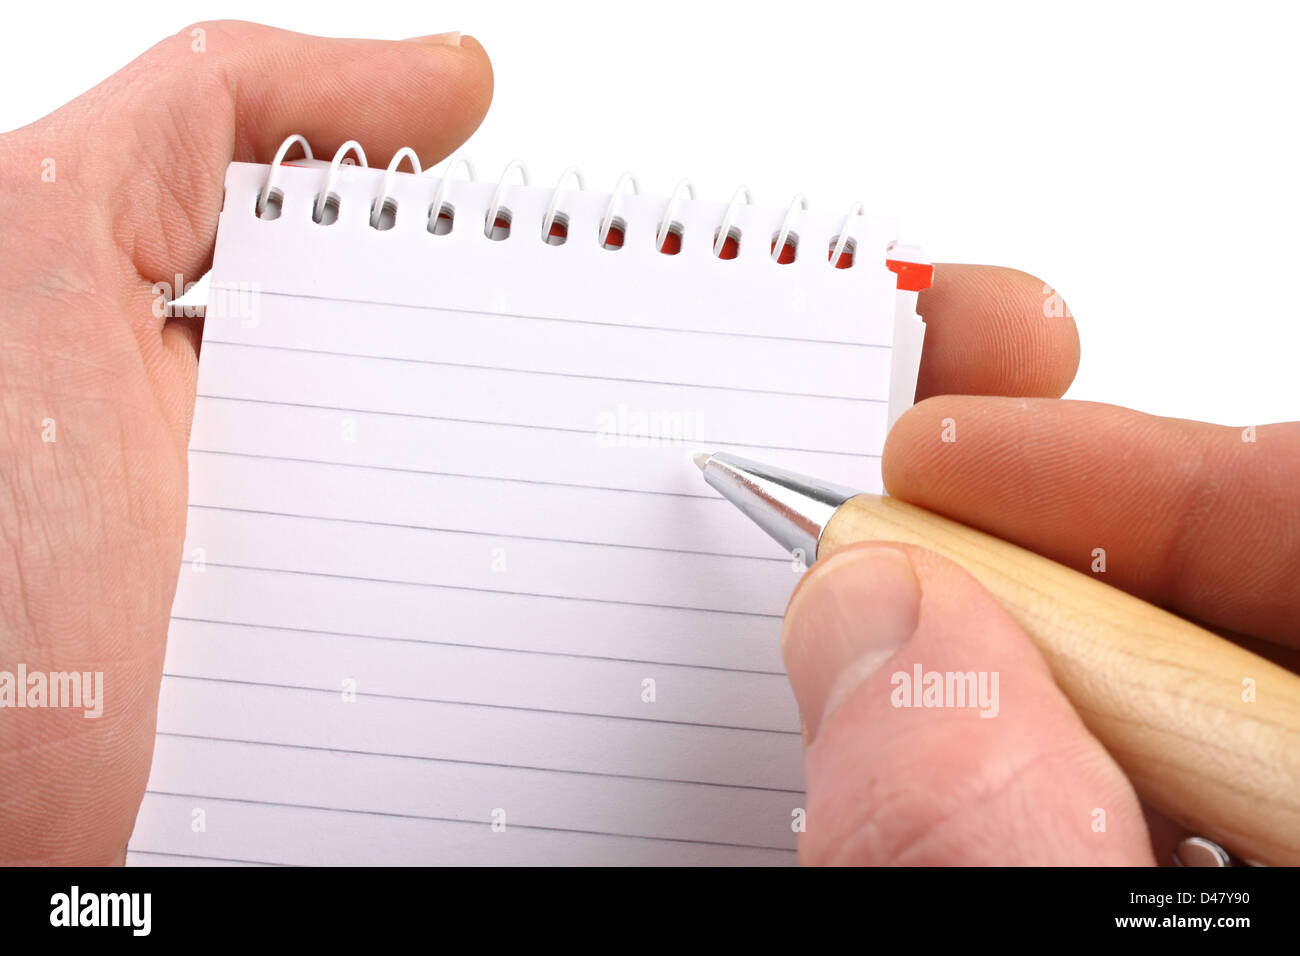 Hands with ballpen notepad on isolated white background. - Stock Image